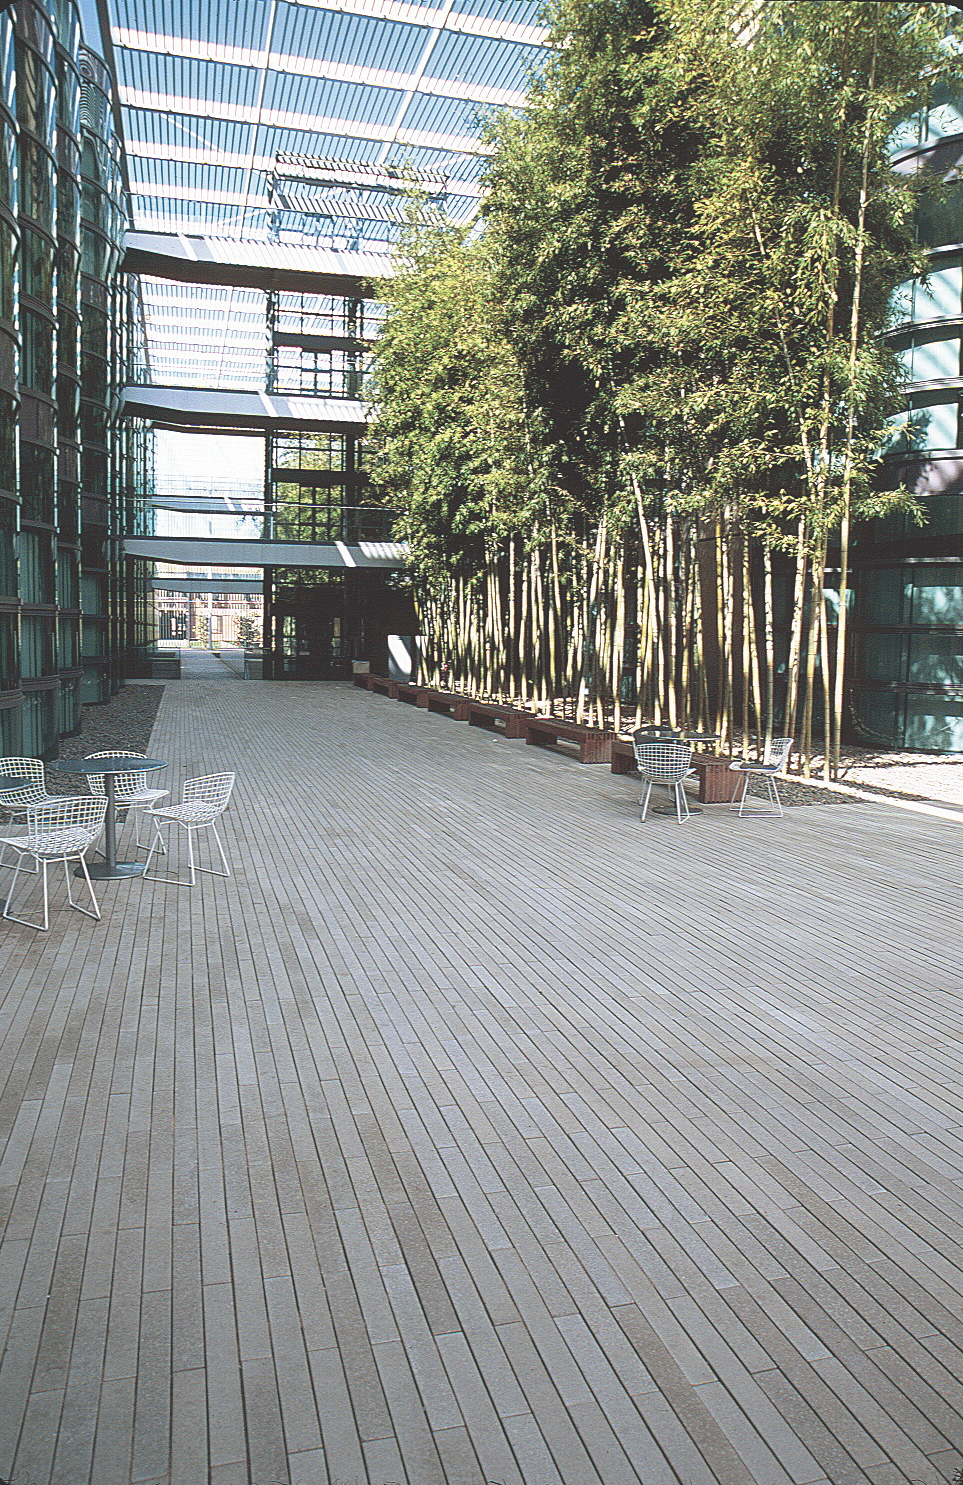 Stepstone developed the Narrow Modular Pavers with landscape architect Peter Walker, who requested them for the Stanford University campus. After adjusting the production process to accommodate the new shape, McWilliams was  Photo 4 of 8 in Drawing the Line: Concrete Pavers That Advance Architectural Design